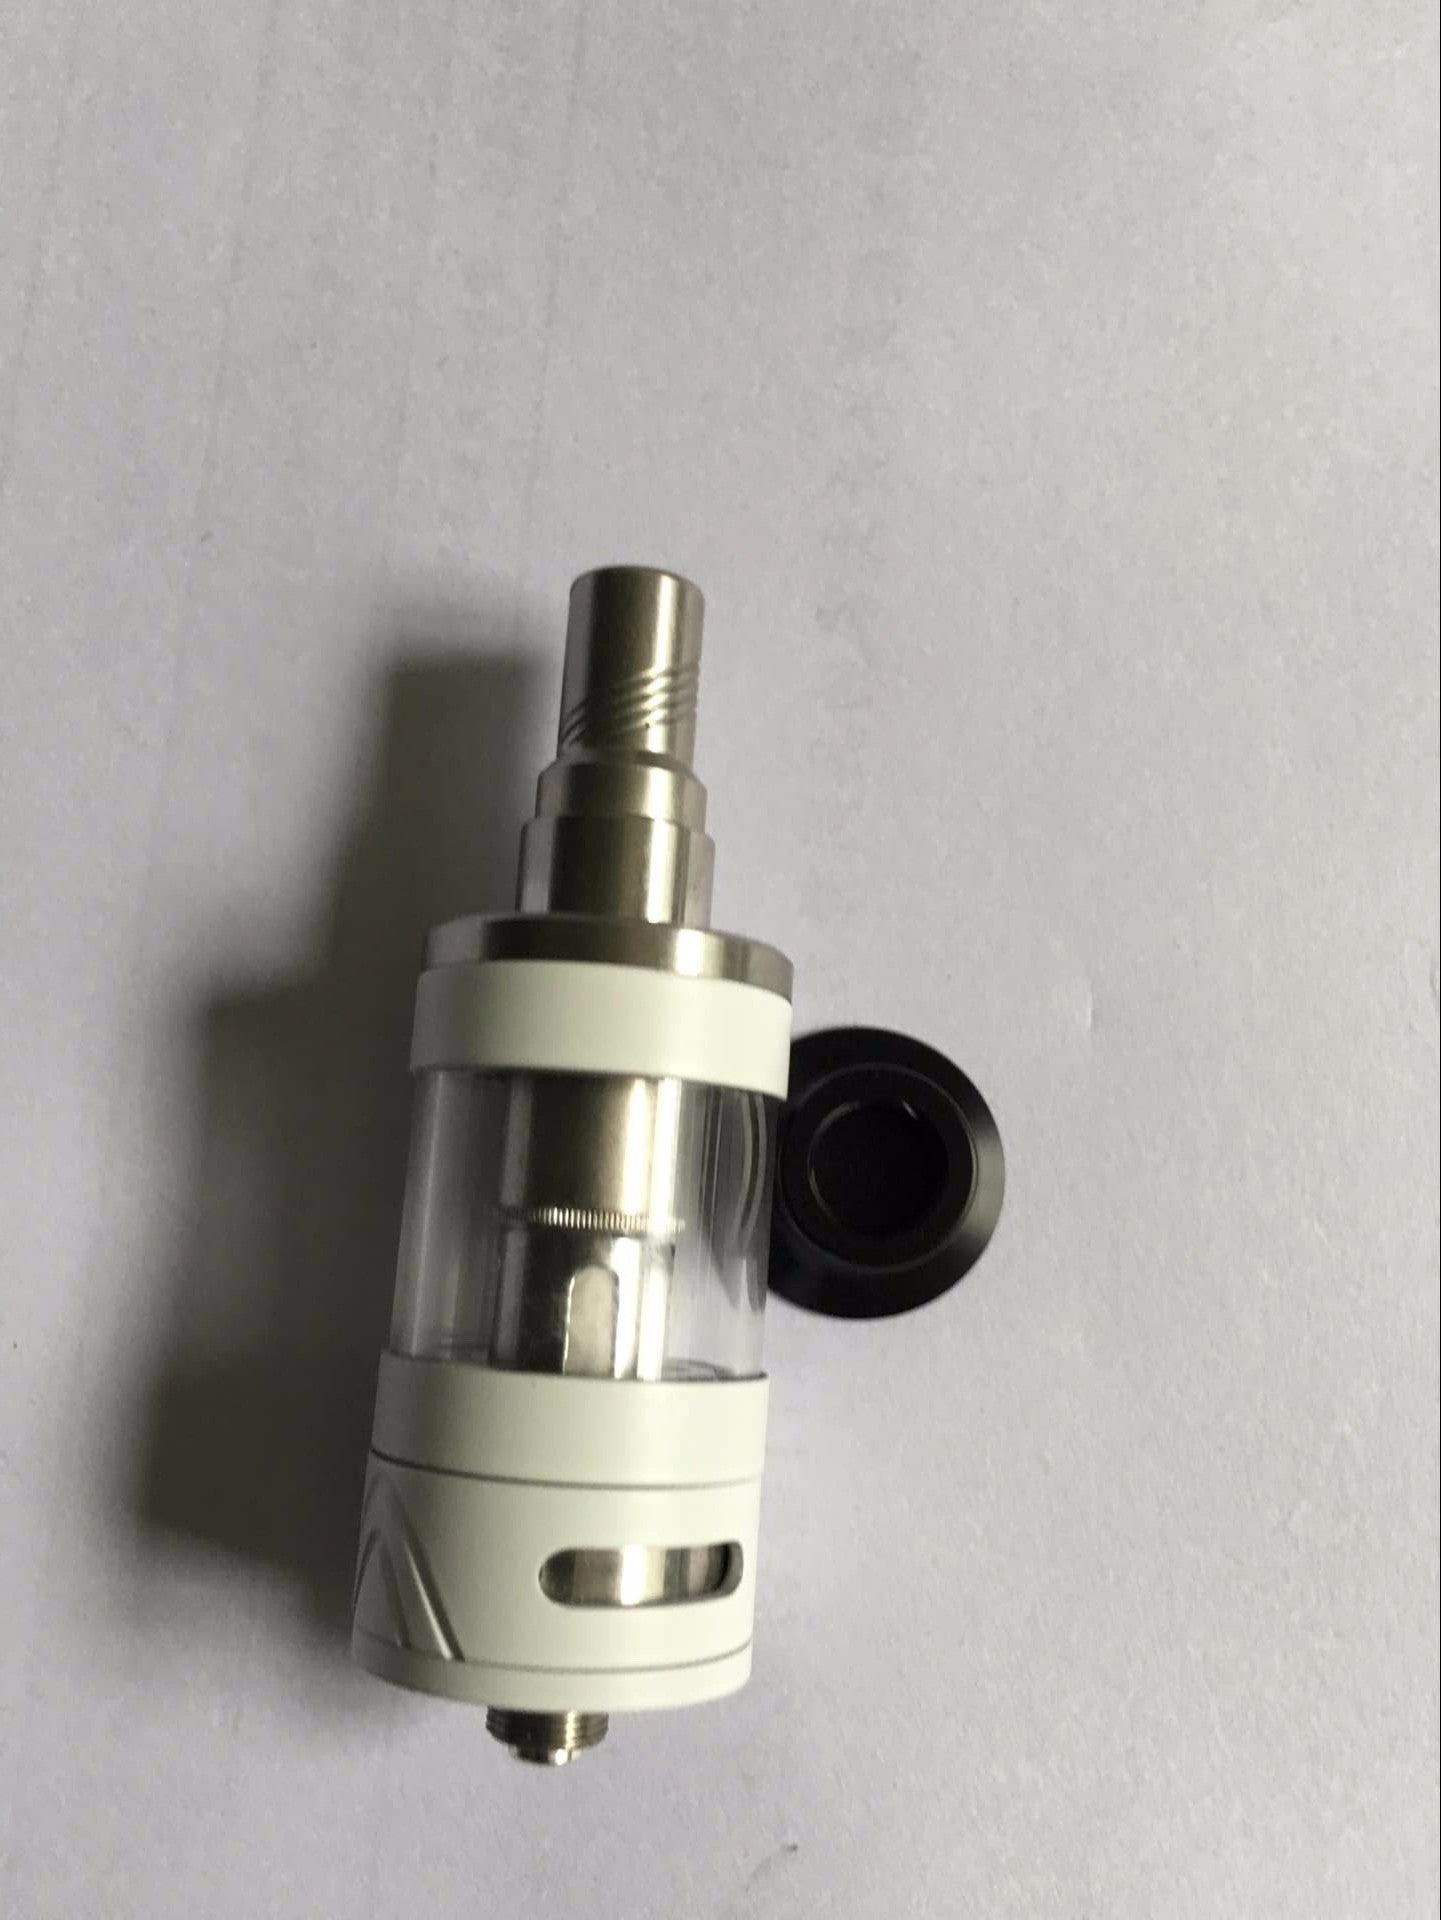 TOBECO MINI SUPERTANK SUPER TANK (25MM COMPATIBLE) STAINLESS REPLACEMENT TOP CAP 510 DRIP TIP ADAPTER